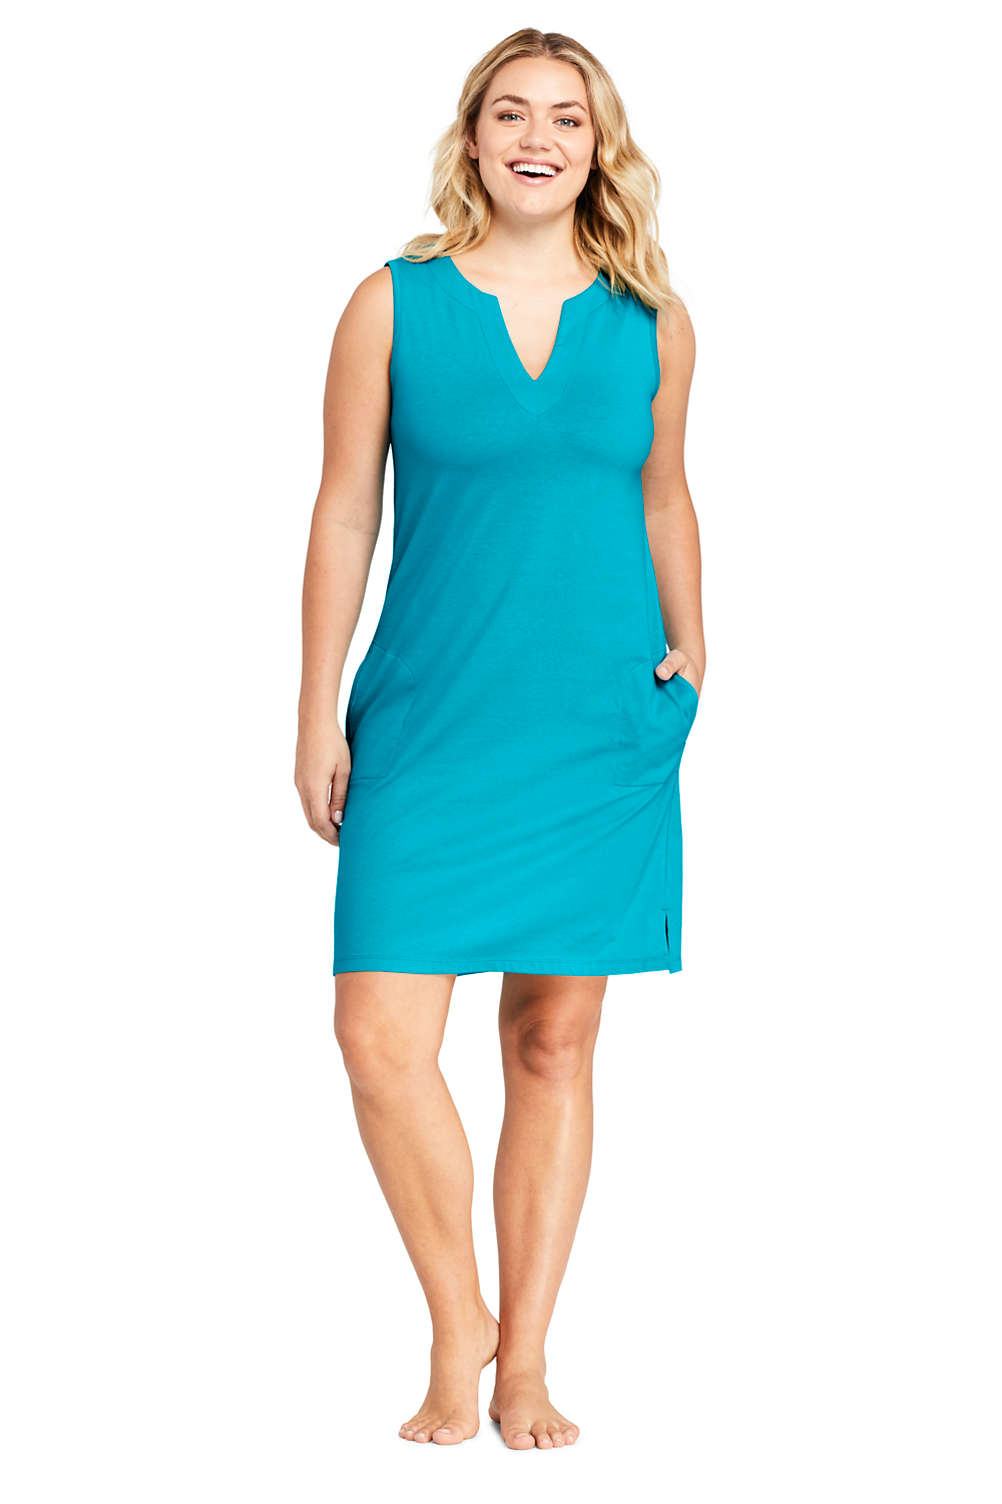 8fd077cd8b9 Women's Plus Size Cotton Jersey Sleeveless Tunic Dress Swim Cover-up from  Lands' End